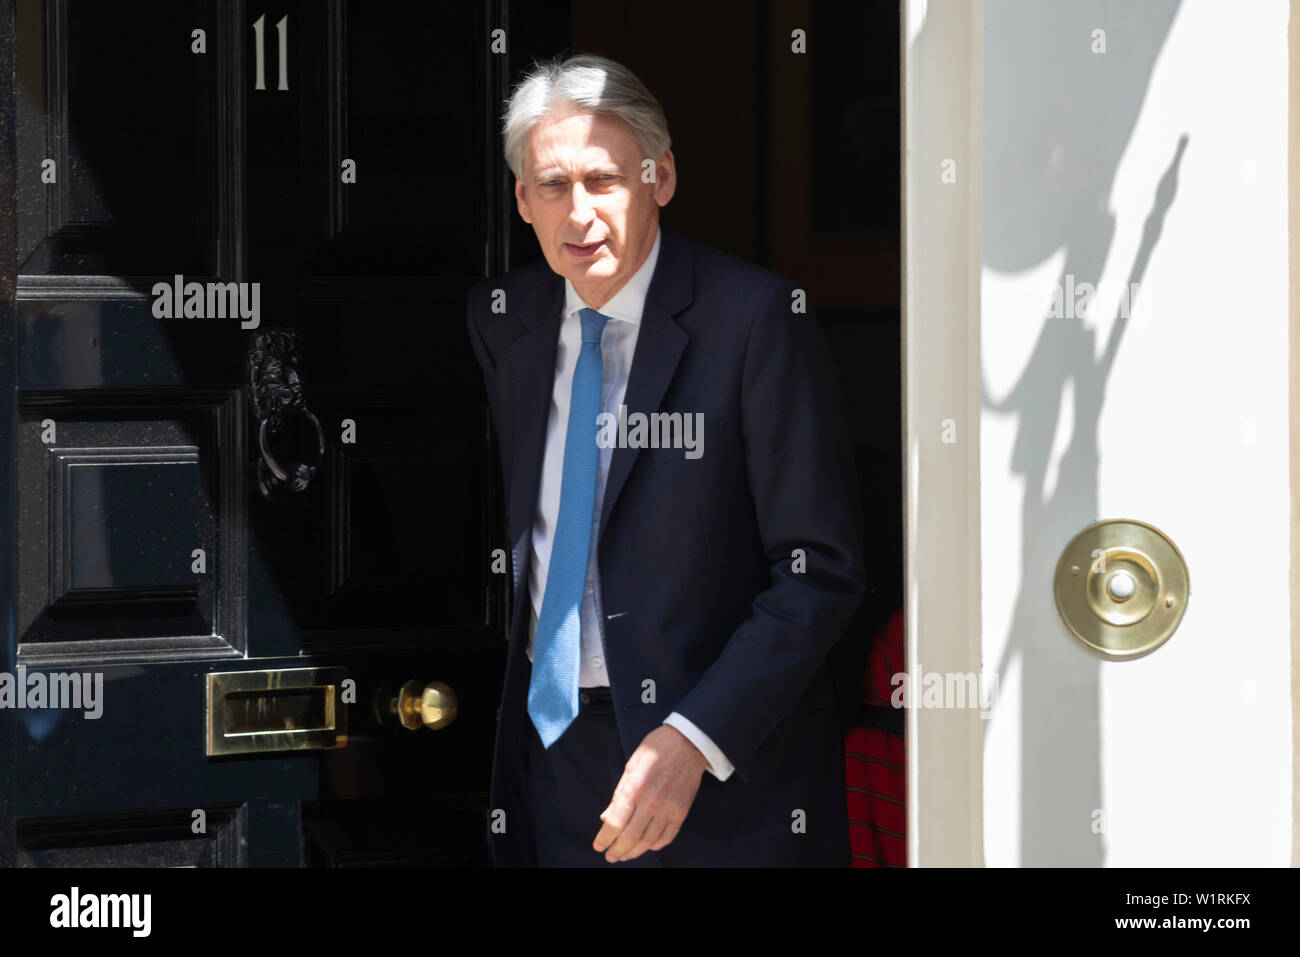 London, UK. 3 July 2019. Chancellor of the Exchequer Philip Hammond departs Downing Street for the House of Commons. Credit: Claire Doherty/Alamy Live News Stock Photo